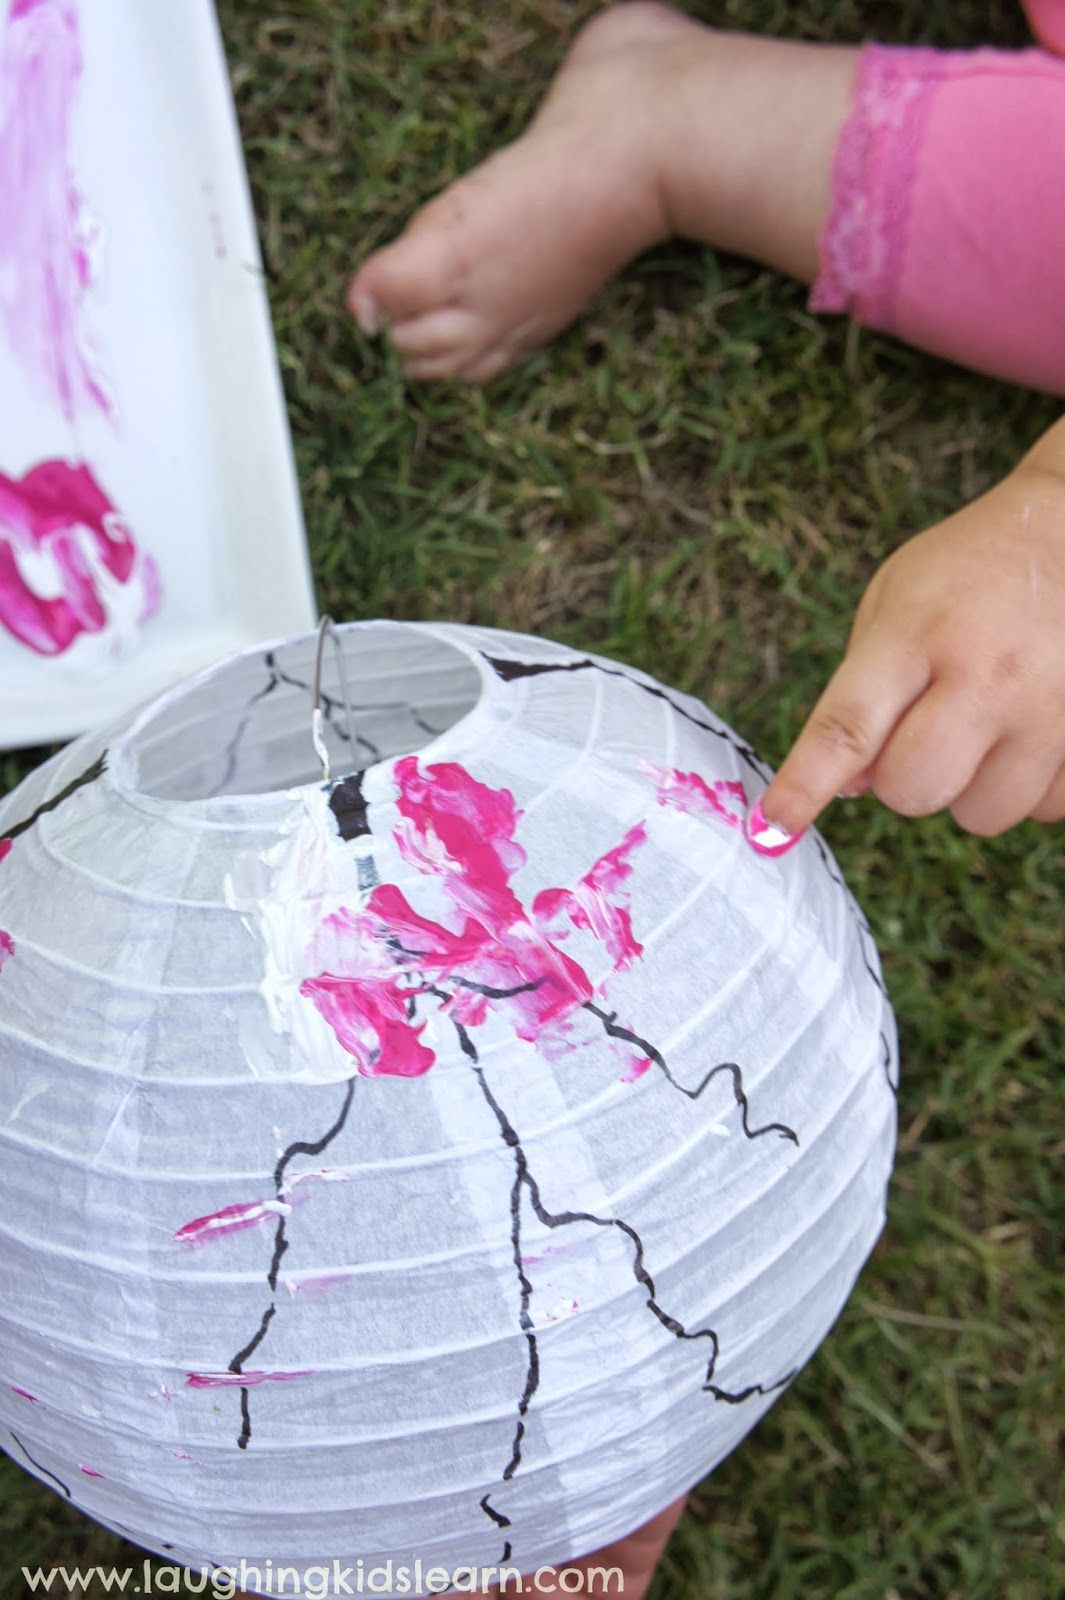 Gorgeous Toddler Decorated Lanterns #craft Inspired By Cherry Blossom Trees